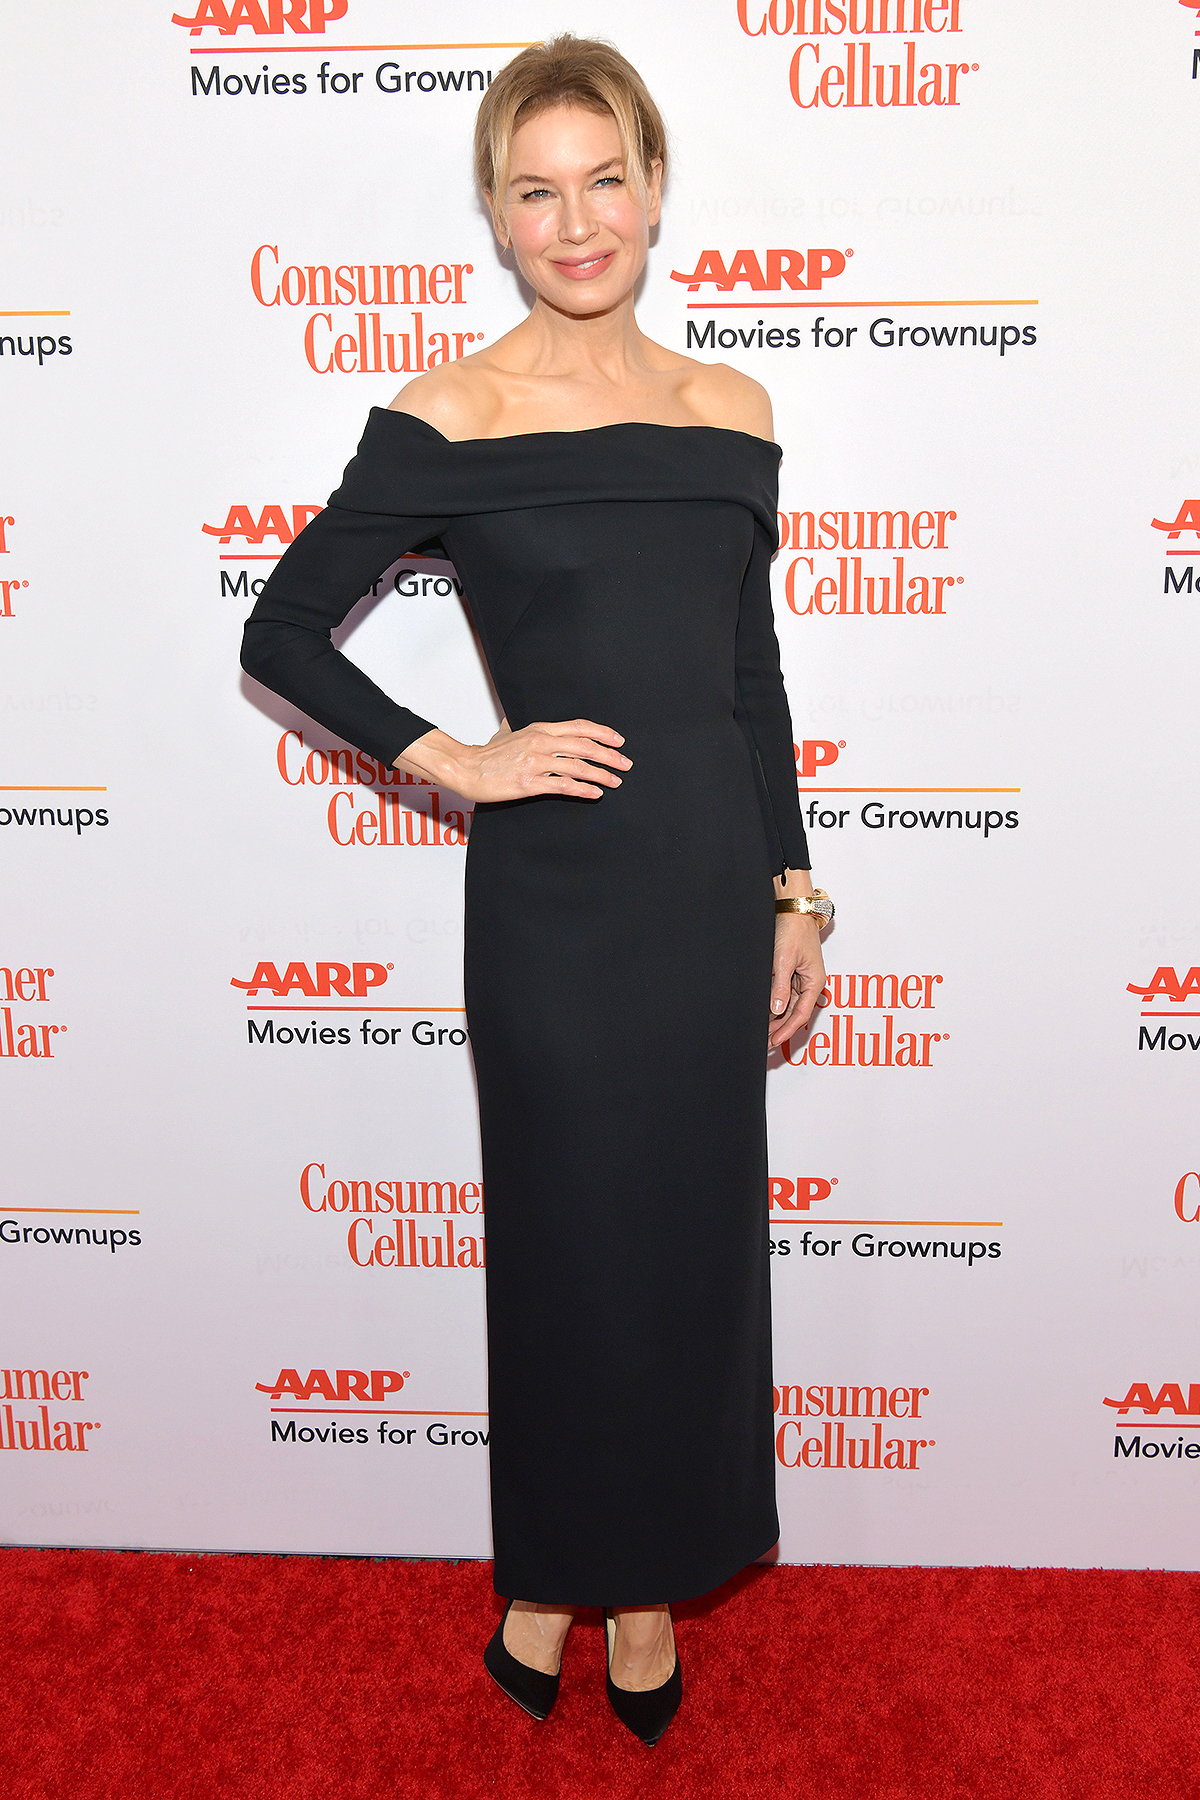 Renée Zellweger attends AARP The Magazine's 19th Annual Movies For Grownups Awards at Beverly Wilshire, A Four Seasons Hotel on January 11, 2020